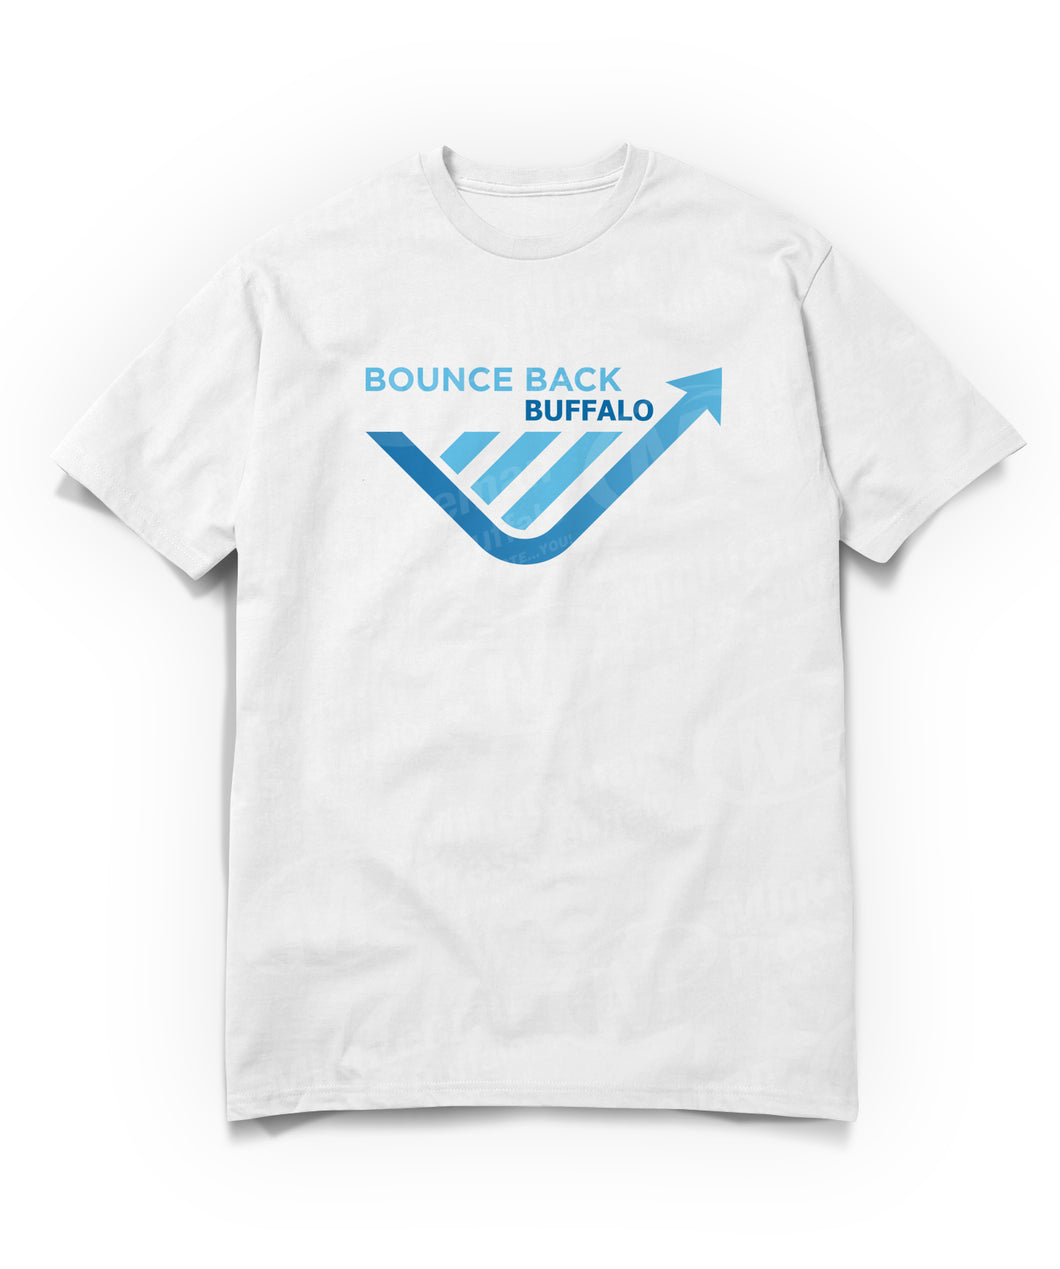 bounce back buffalo on white t-shirt